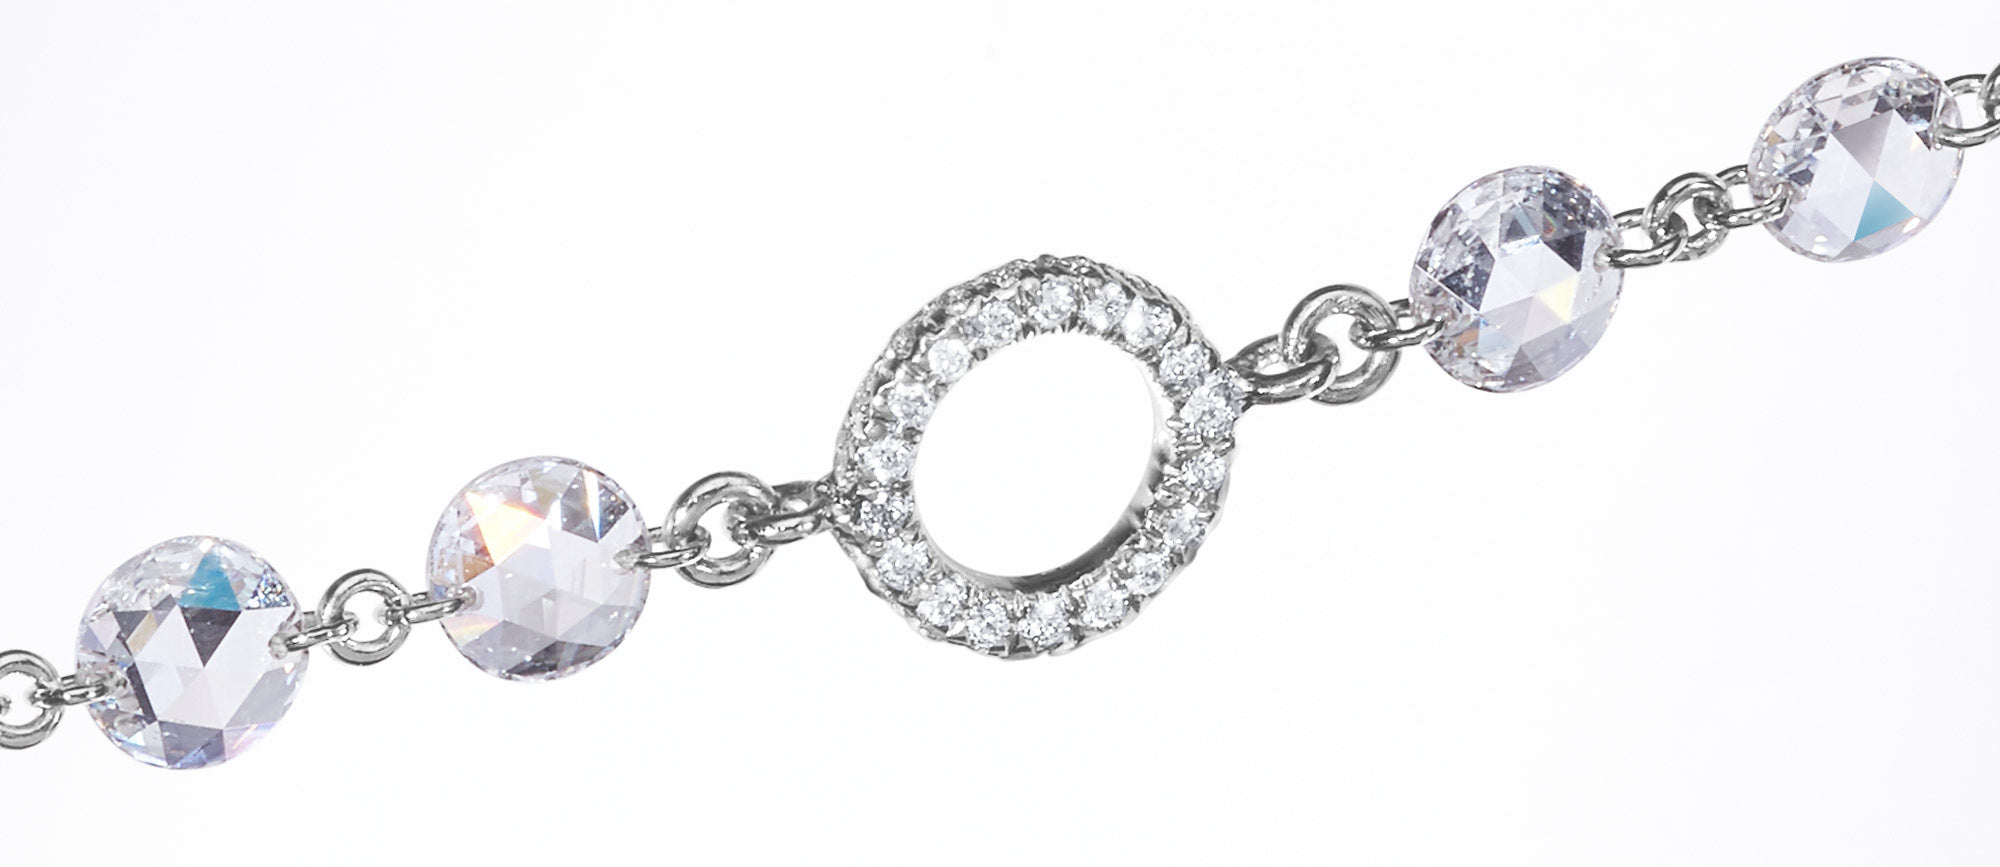 Pave jump ring on 64Facets Ethereal Diamond Chain Necklace